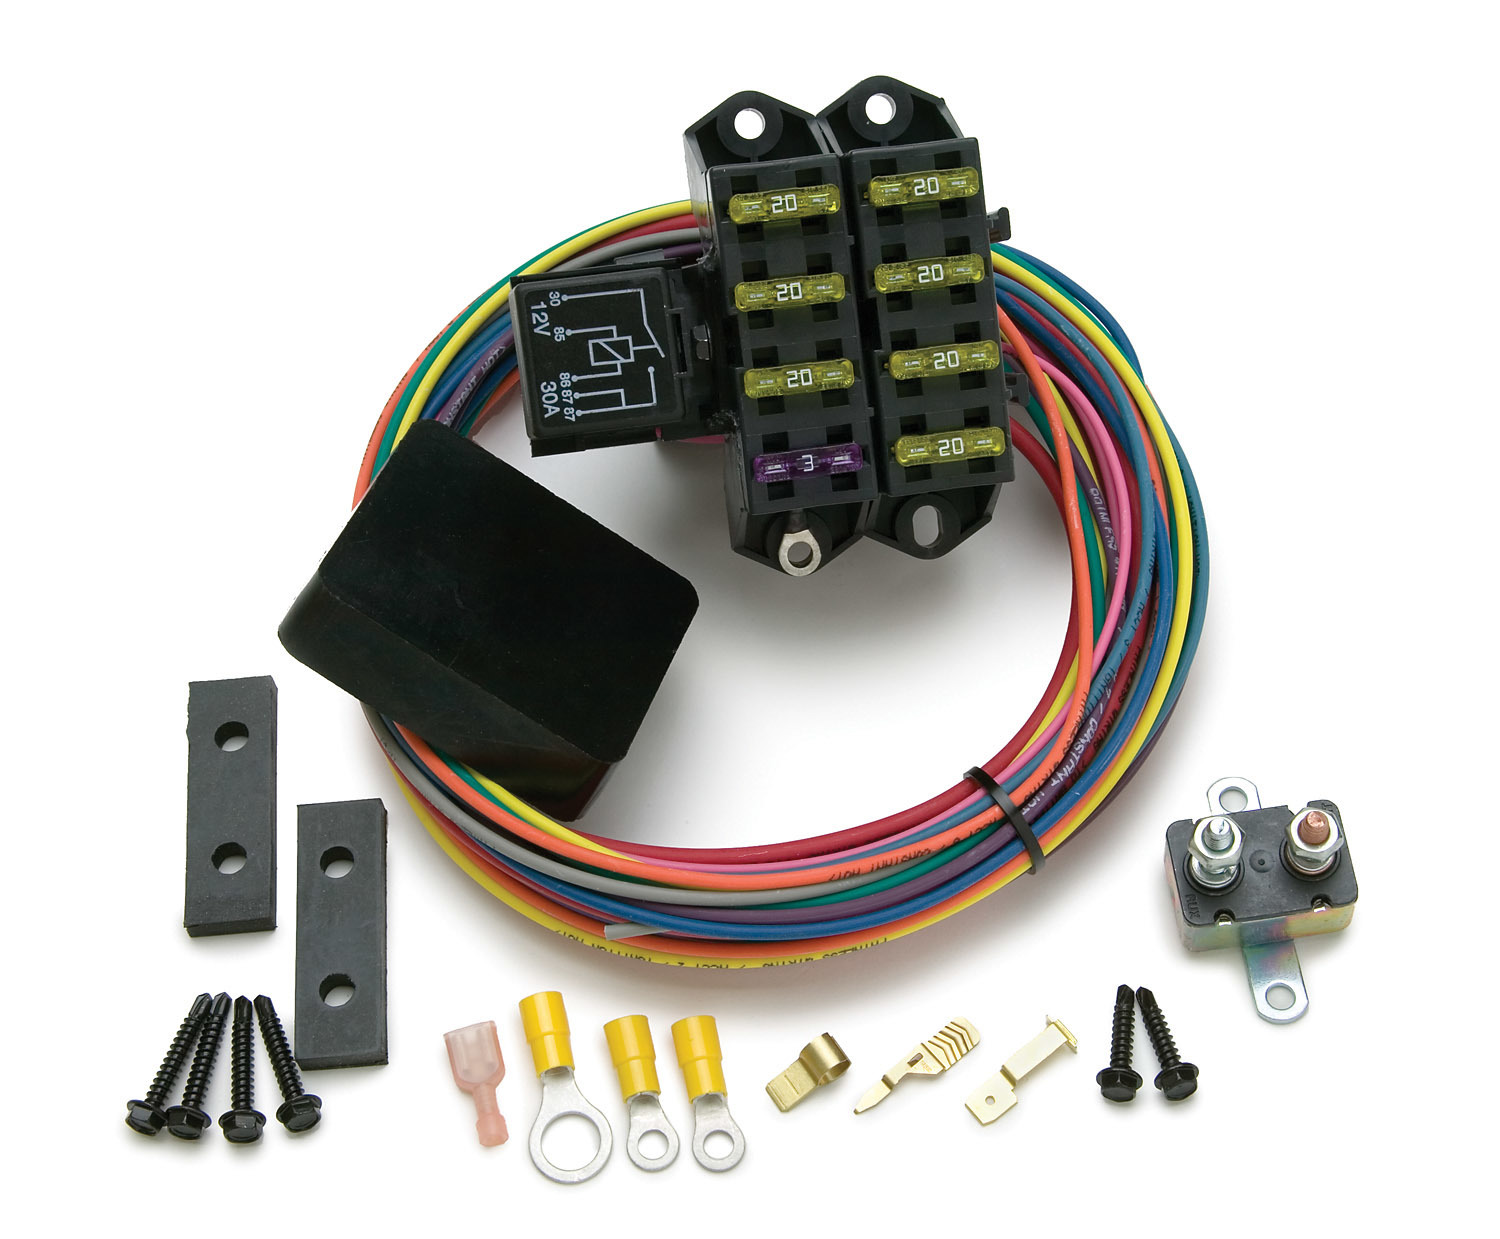 Painless Wiring 70207 Fuse Block, Weather Resistant Auxiliary, 7 Circuit, Harness / Relay, Universal, Each